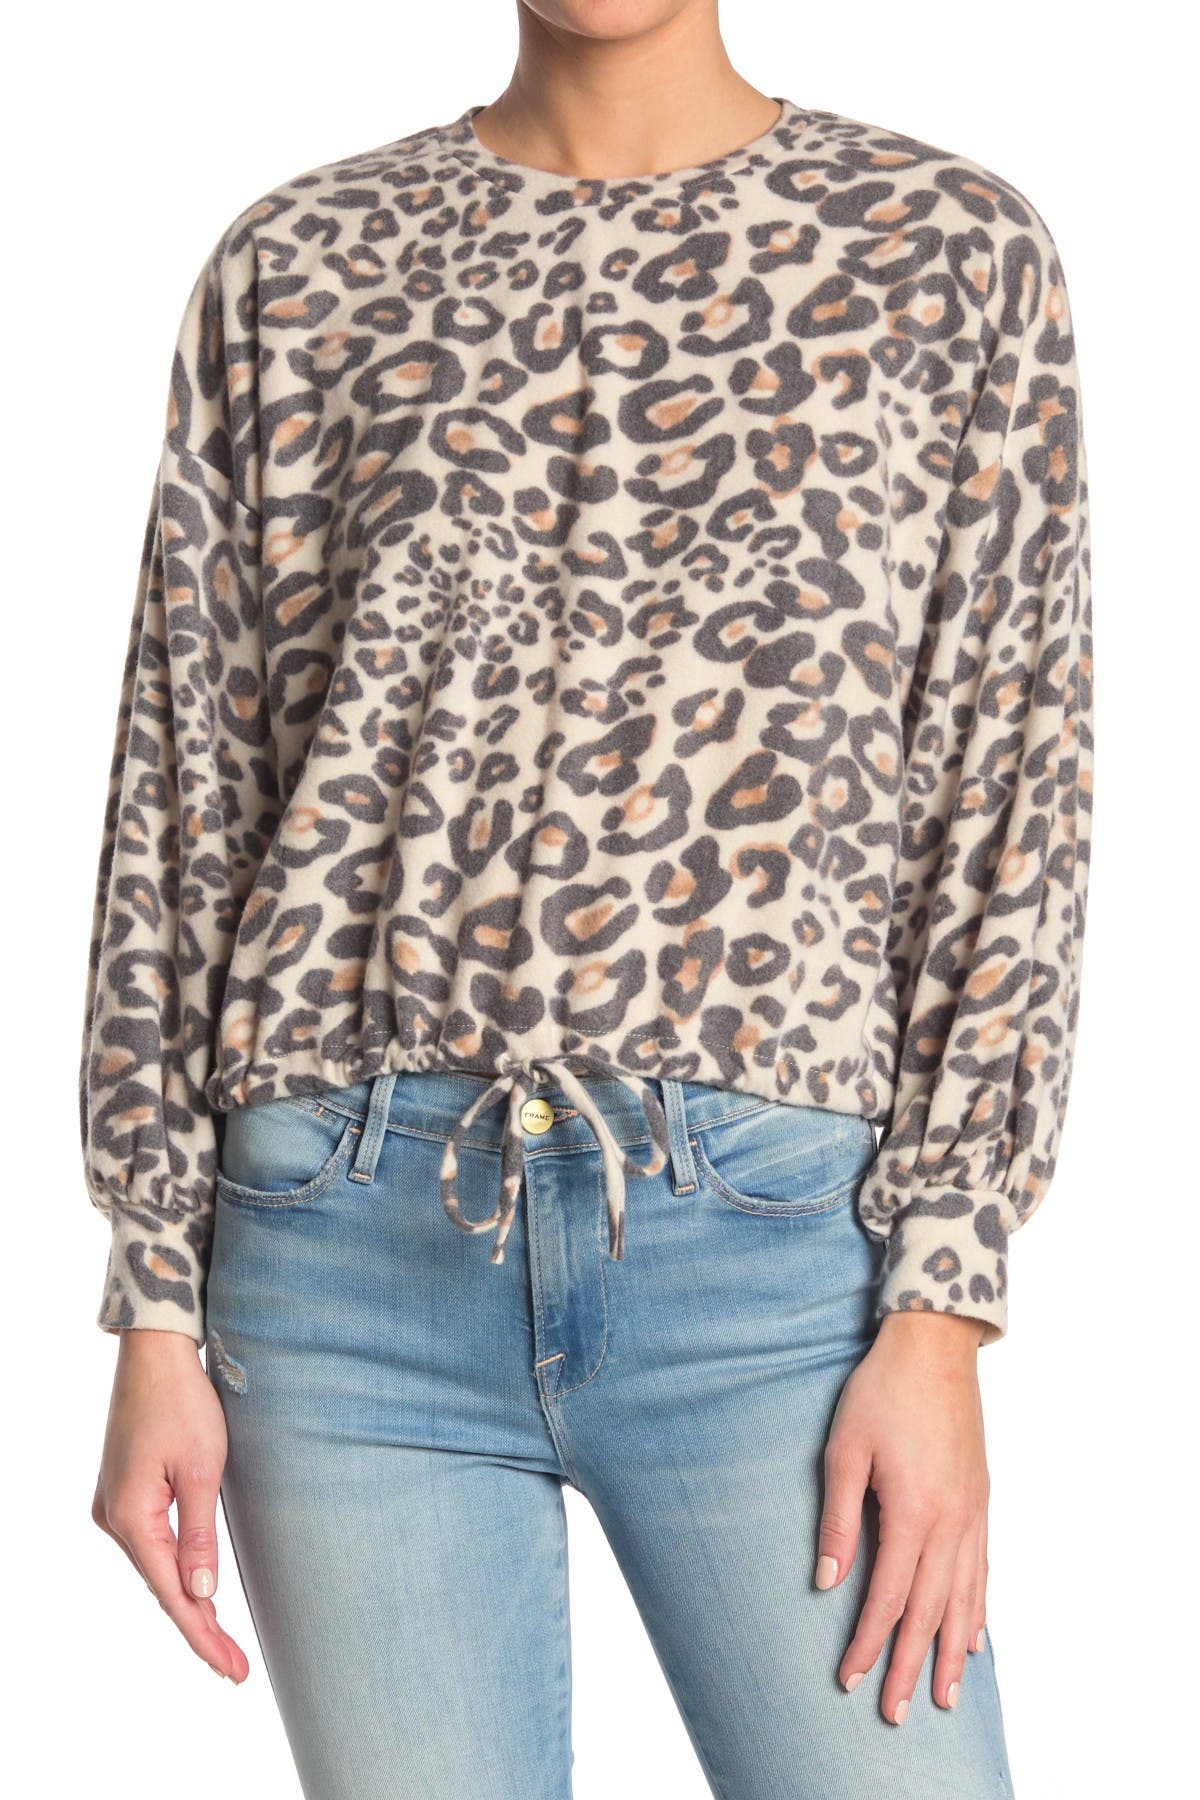 Image of Know One Cares Brushed Knit Leopard Print Drawstring Hem Sweater